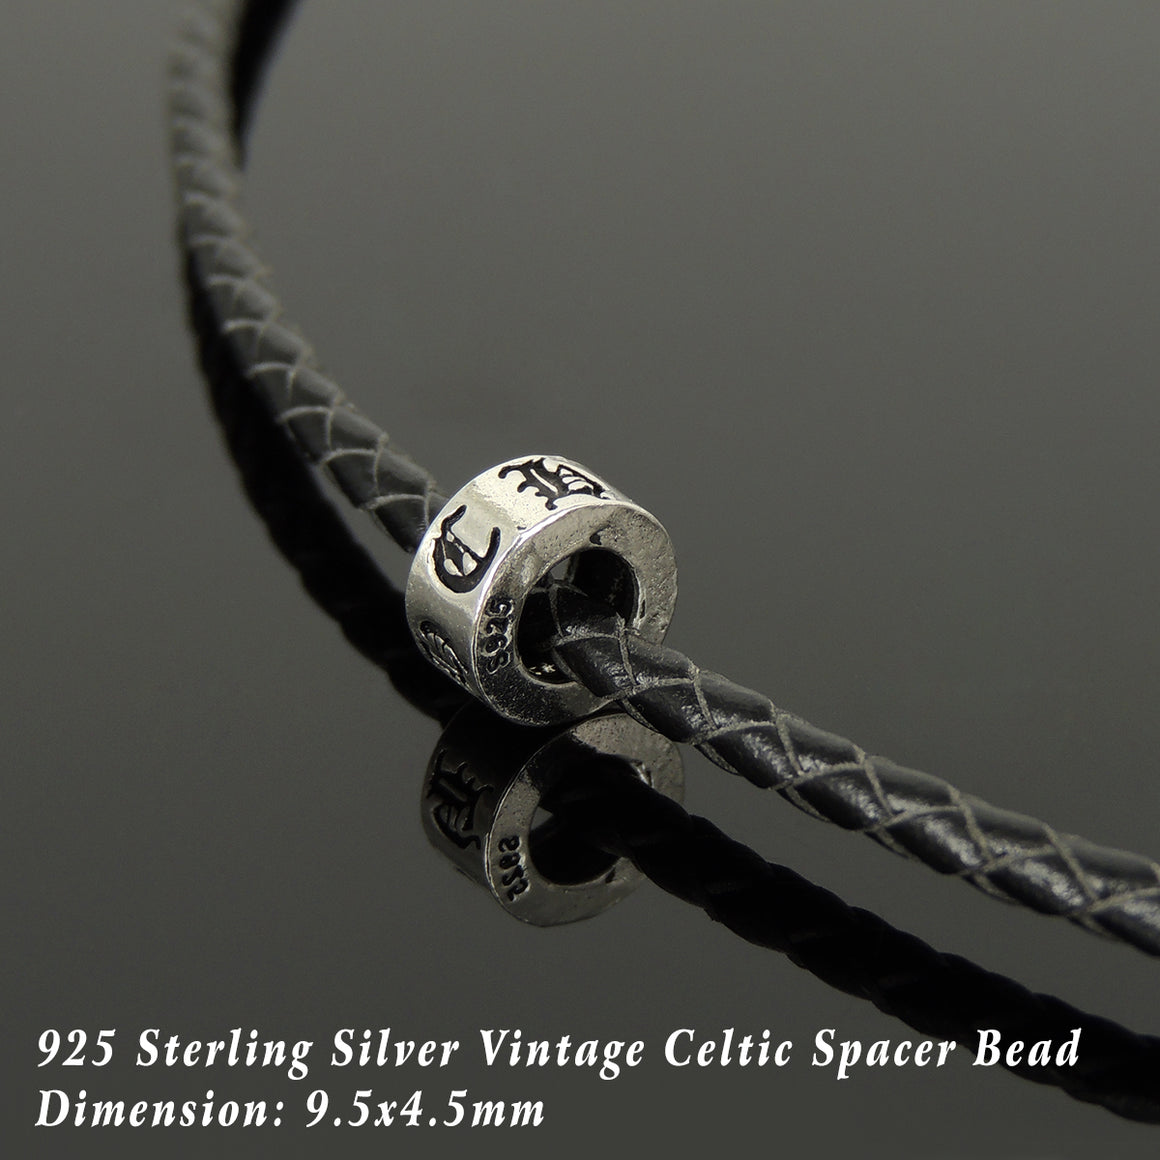 Handmade Vintage Celtic Choker Necklace - Authentic Turkish Black Leather for Men's Women's Casual Style with Sterling Silver 925 (non-plated) Parts NK213